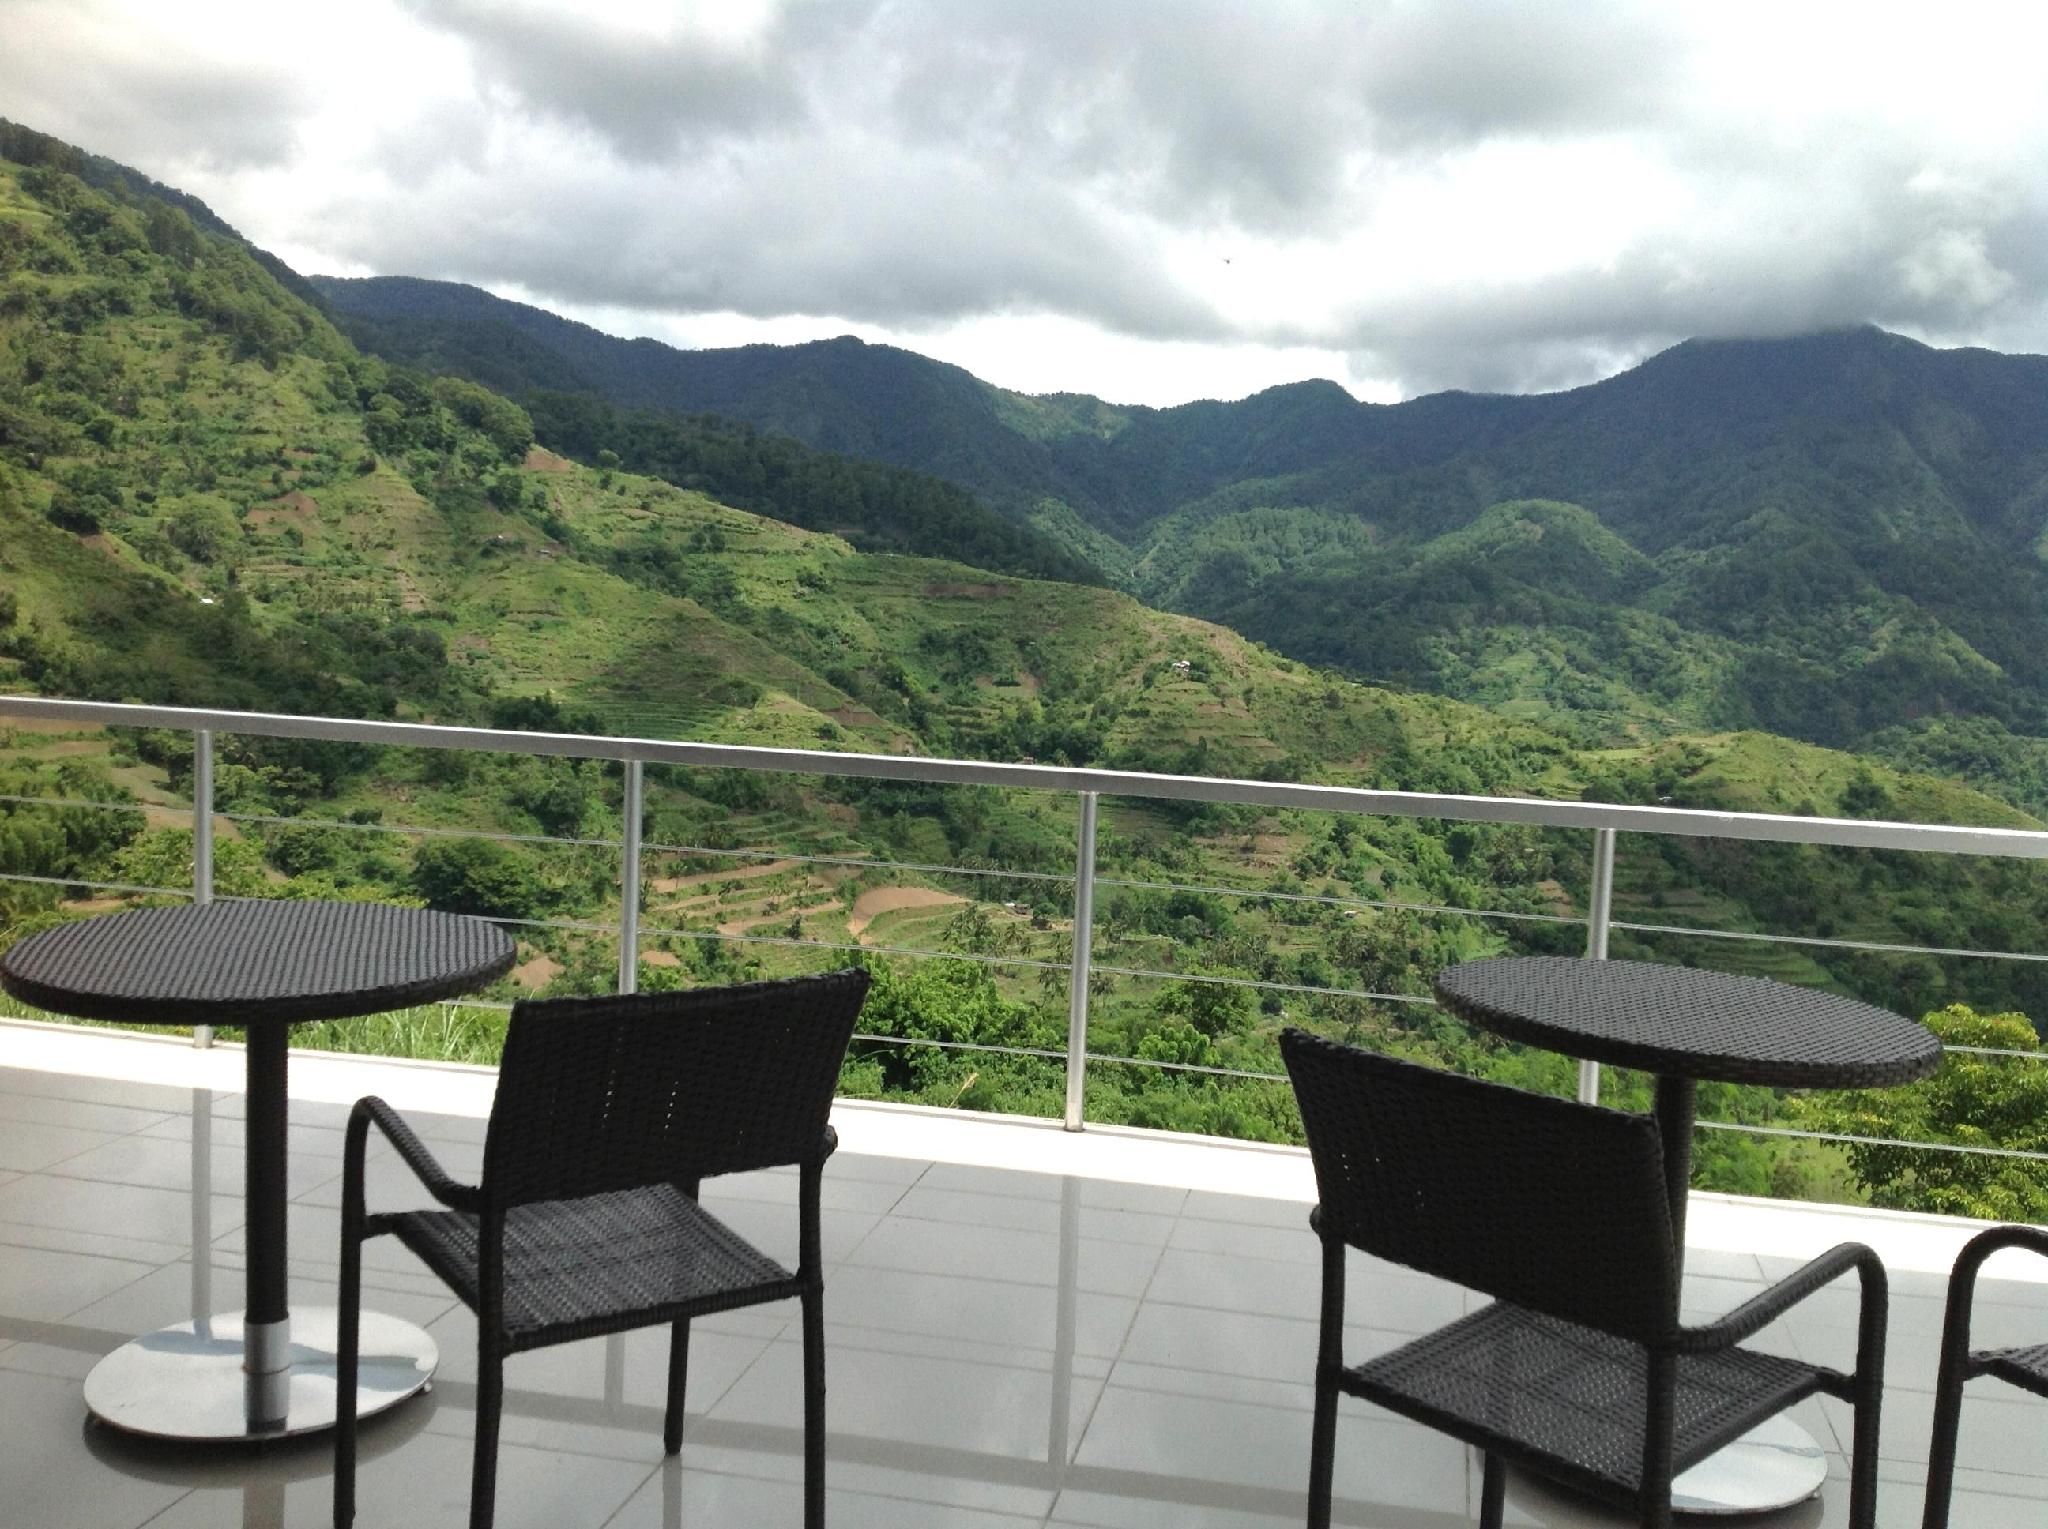 Pineridge Bucari Mountain Resort: Hotels and Resorts. Located in Iloilo / Guimaras, .